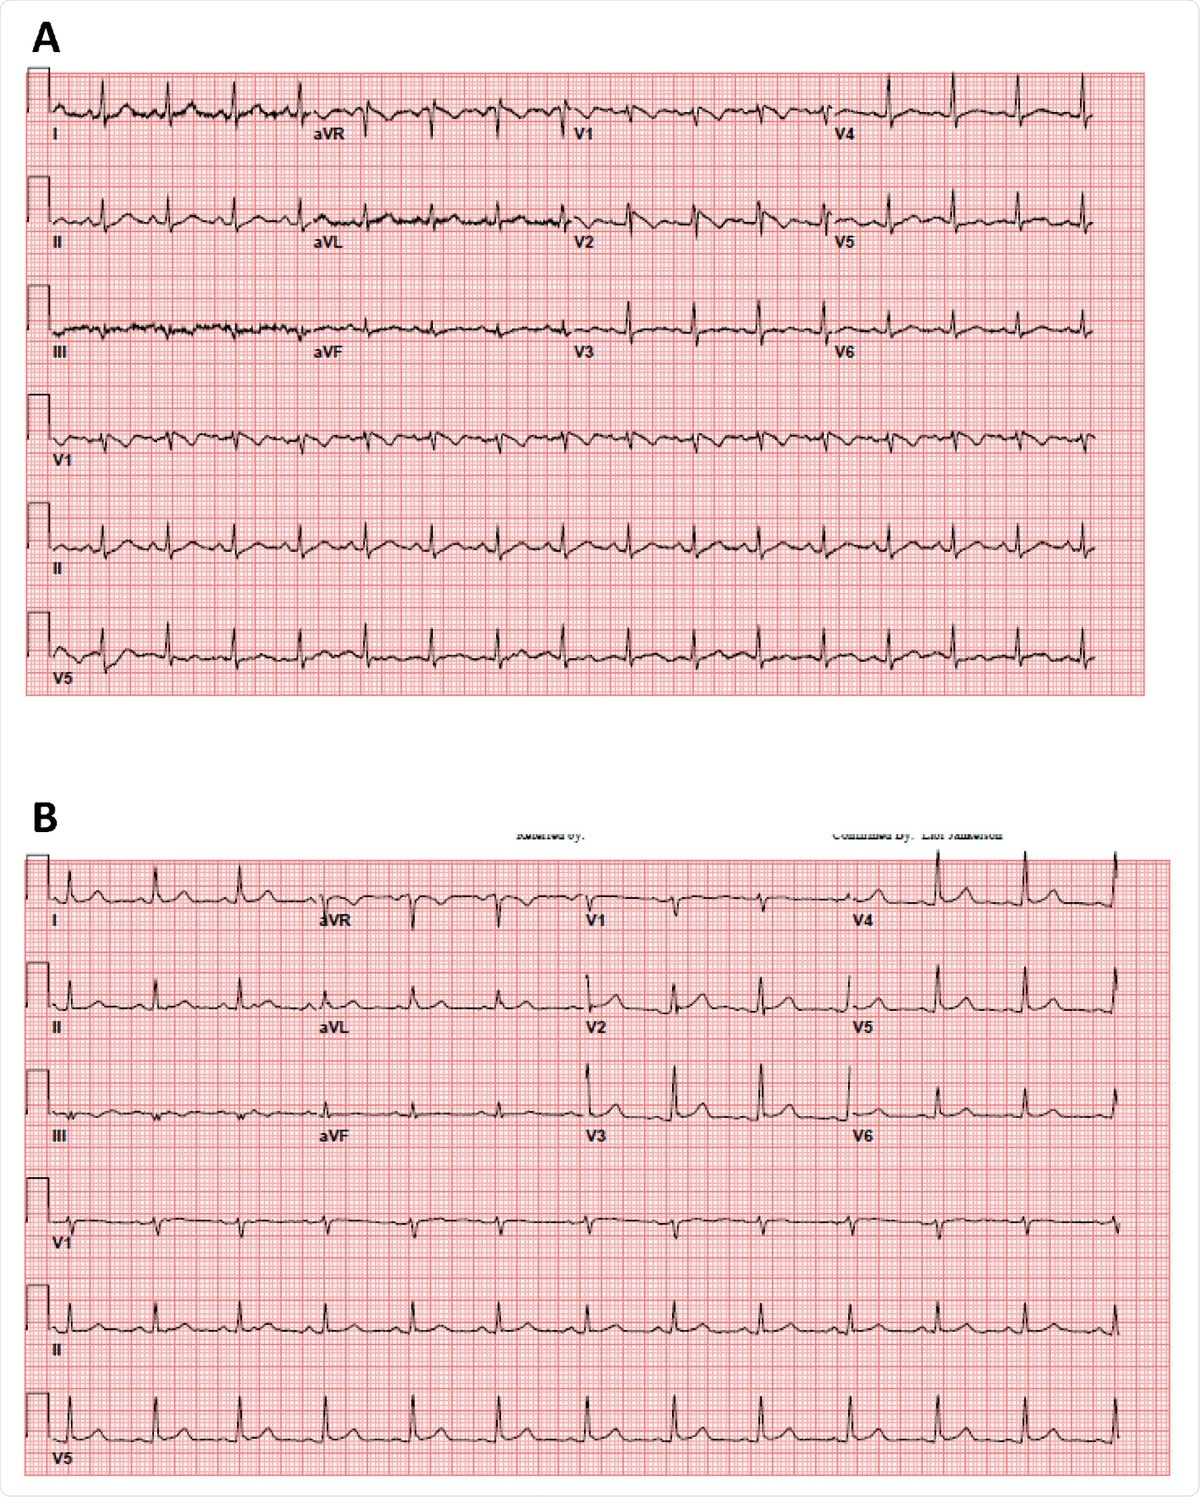 35 year old female patient without significant medical history presented with a fever of 103.1 F. A. The patient's initial 12-lead electrocardiogram in the emergency department. B. The patient's repeat 12-lead electrocardiogram with resolution of fever.